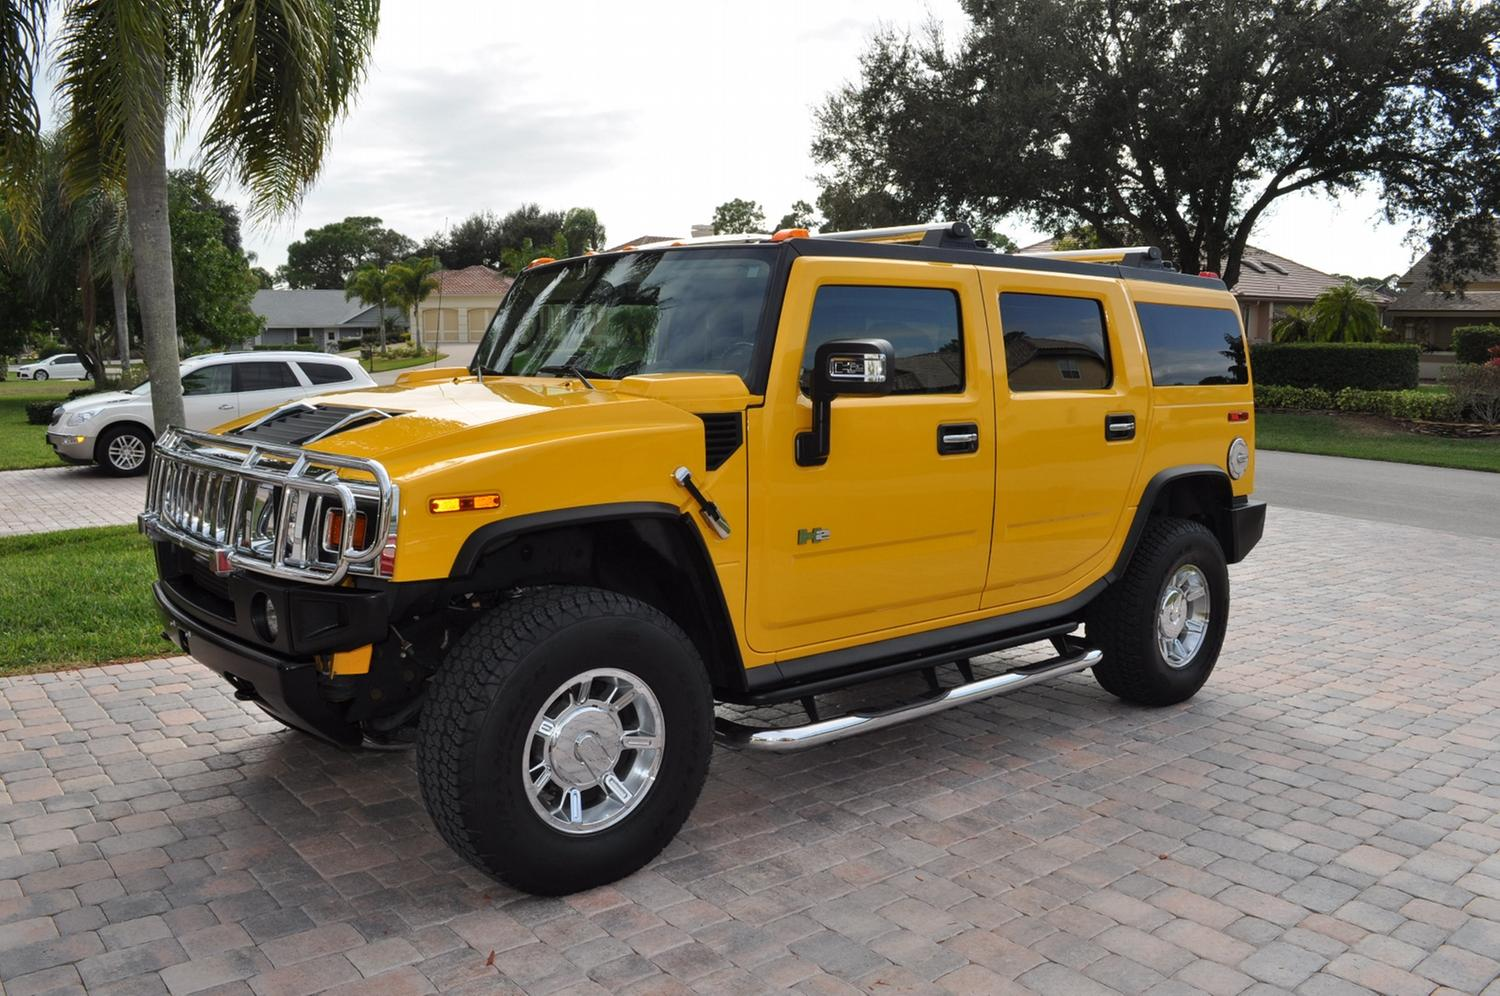 2007 Hummer H2 Wiring Diagram Library Headlight Image 1 Luxury Suv